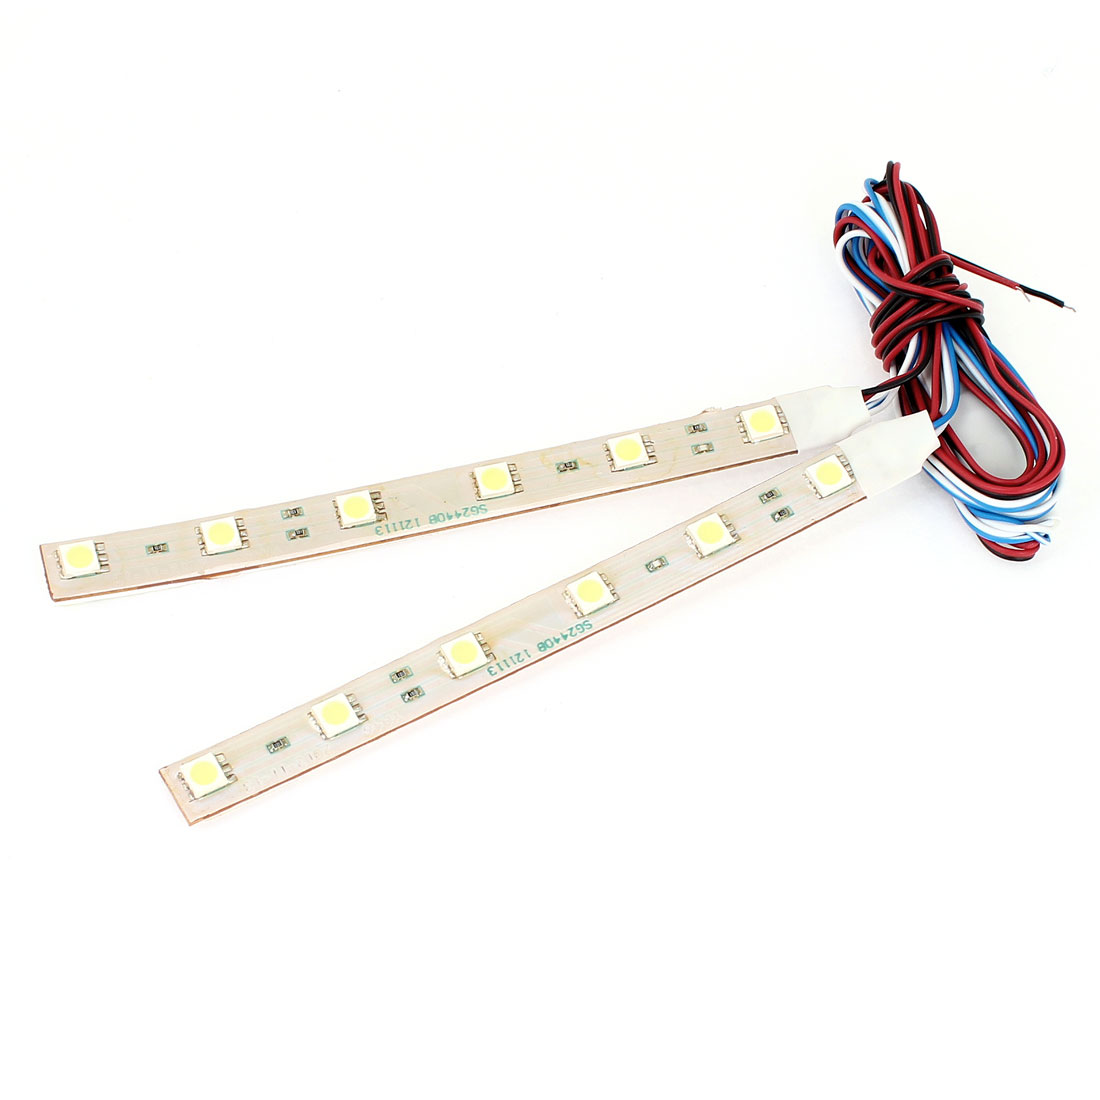 2 Pcs 13cm Adhesive Tape 6 White 5050 SMD LED Car Decorative Lamp Strap